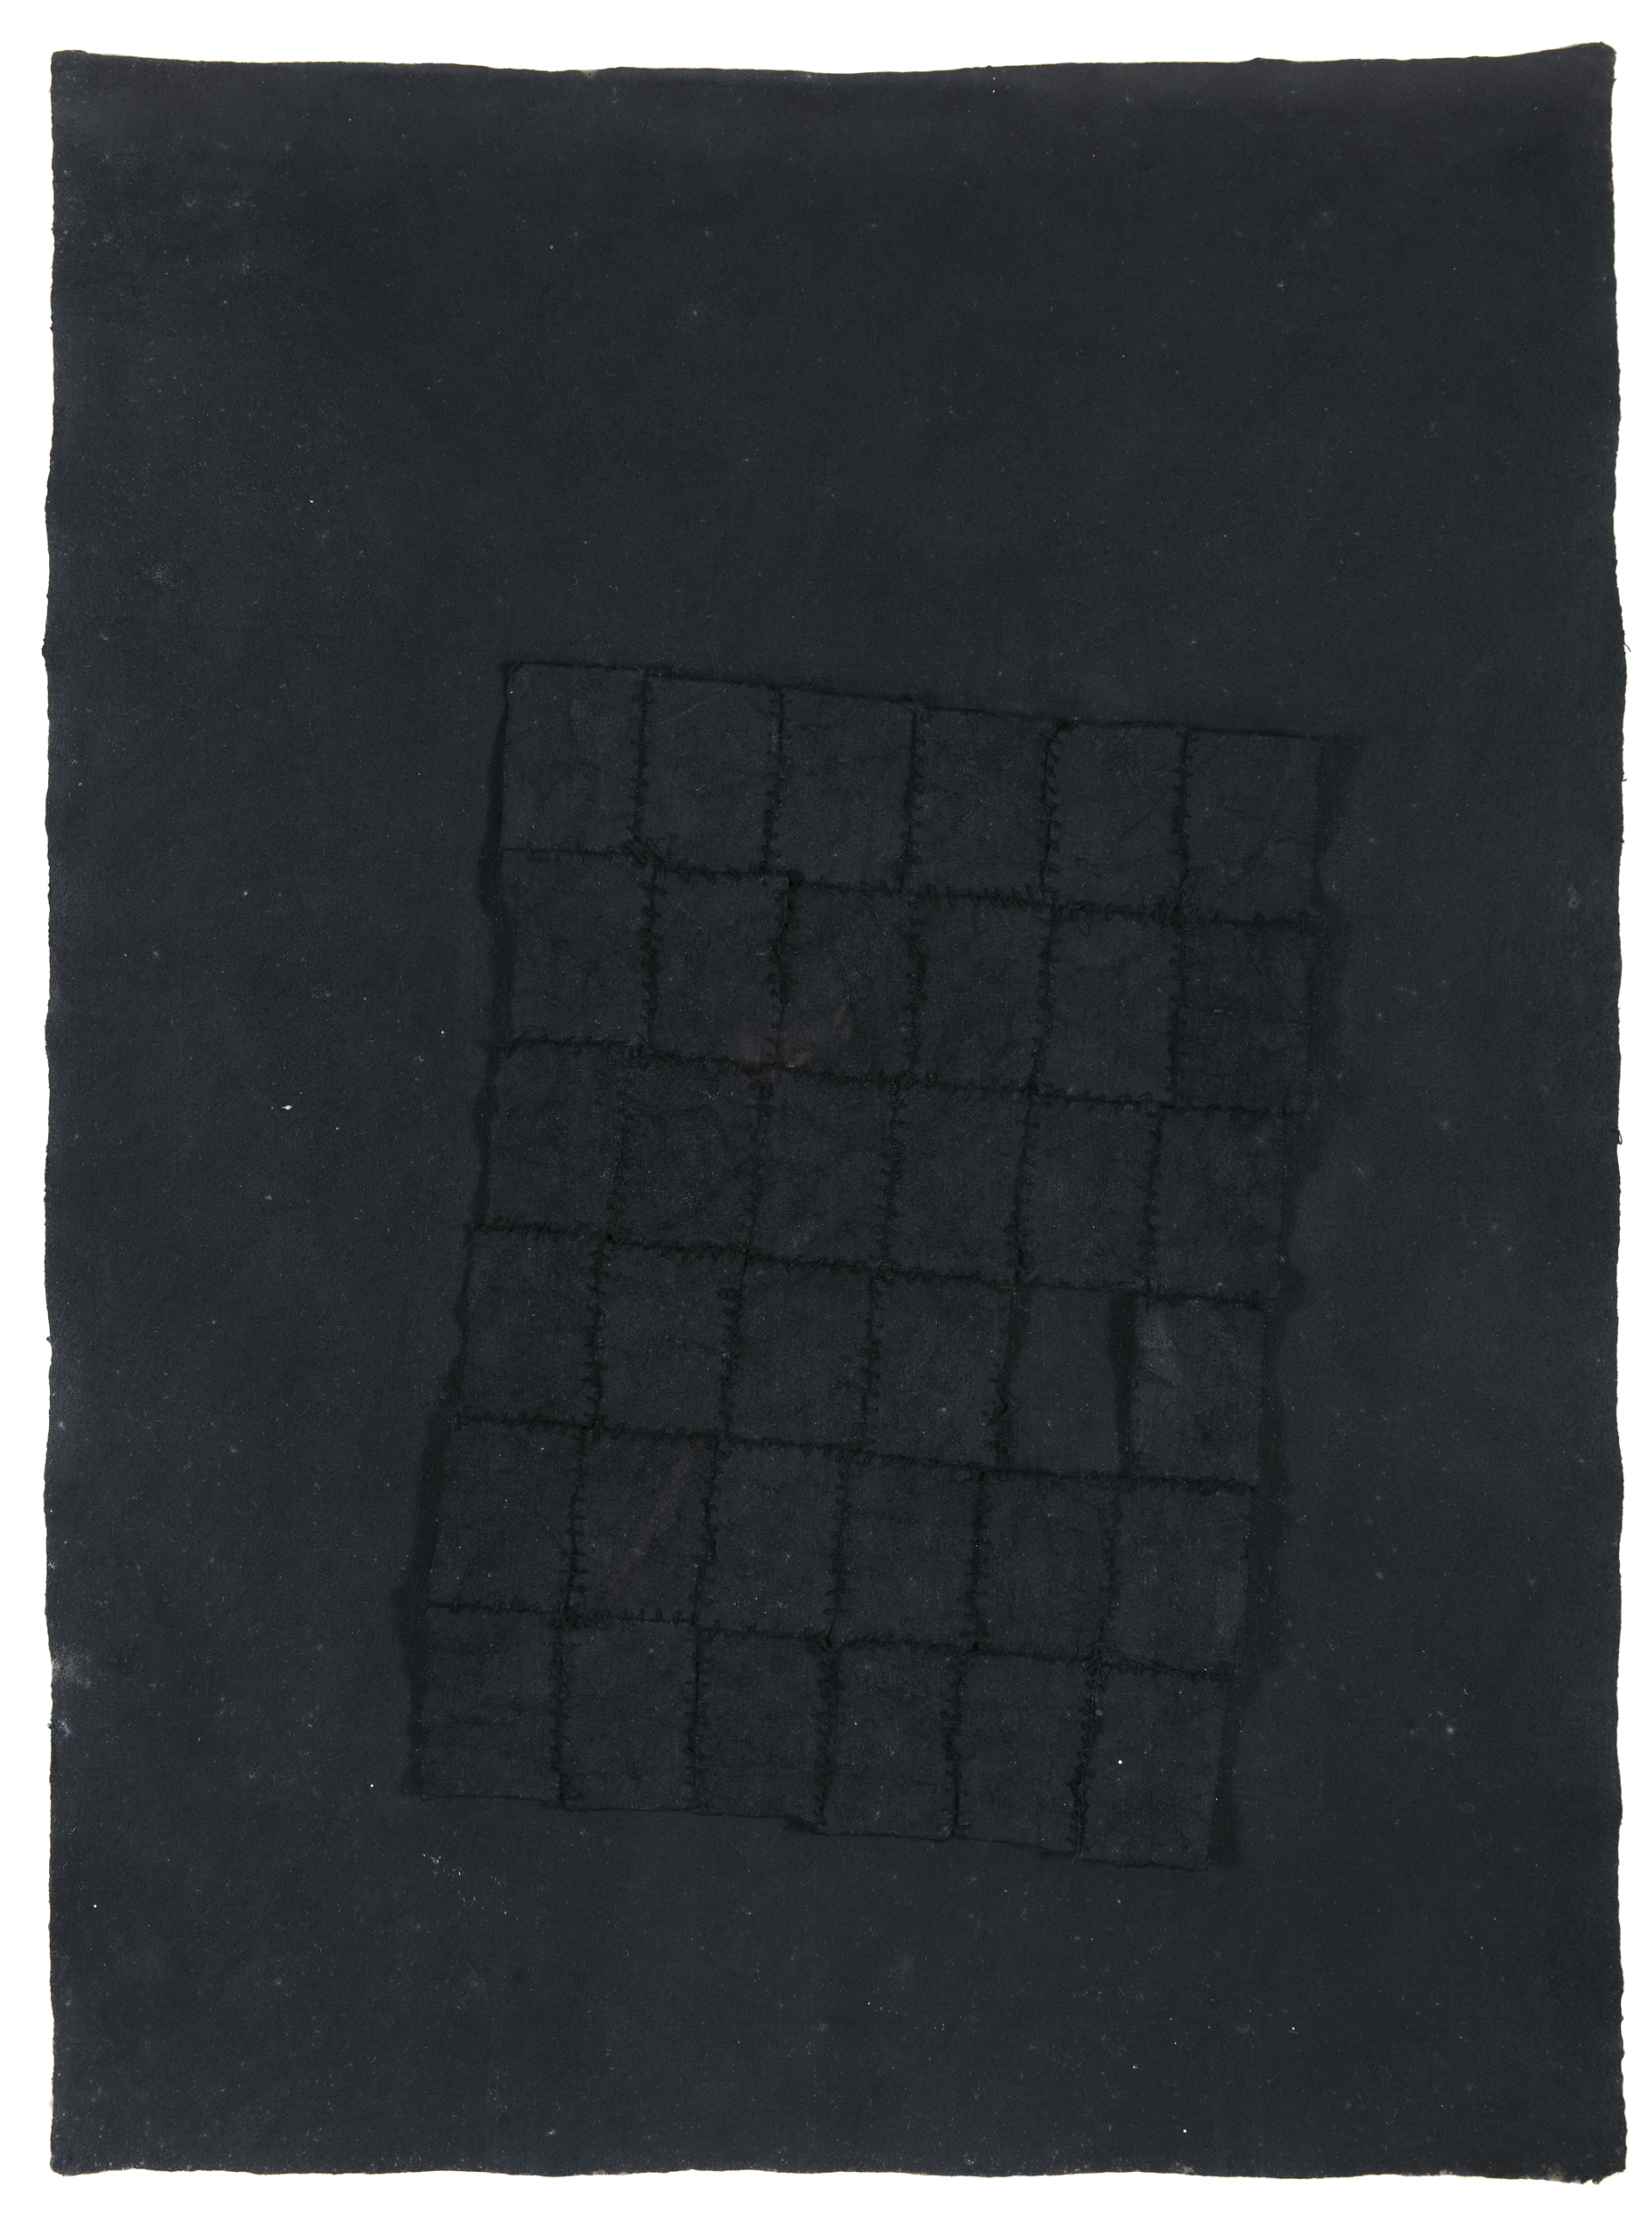 Lot 87 - Michael Coleman (b.1951)Black Emerging (1977)Charcoal and collage, 78 x 56cm (30¾ x 22)Provenance: